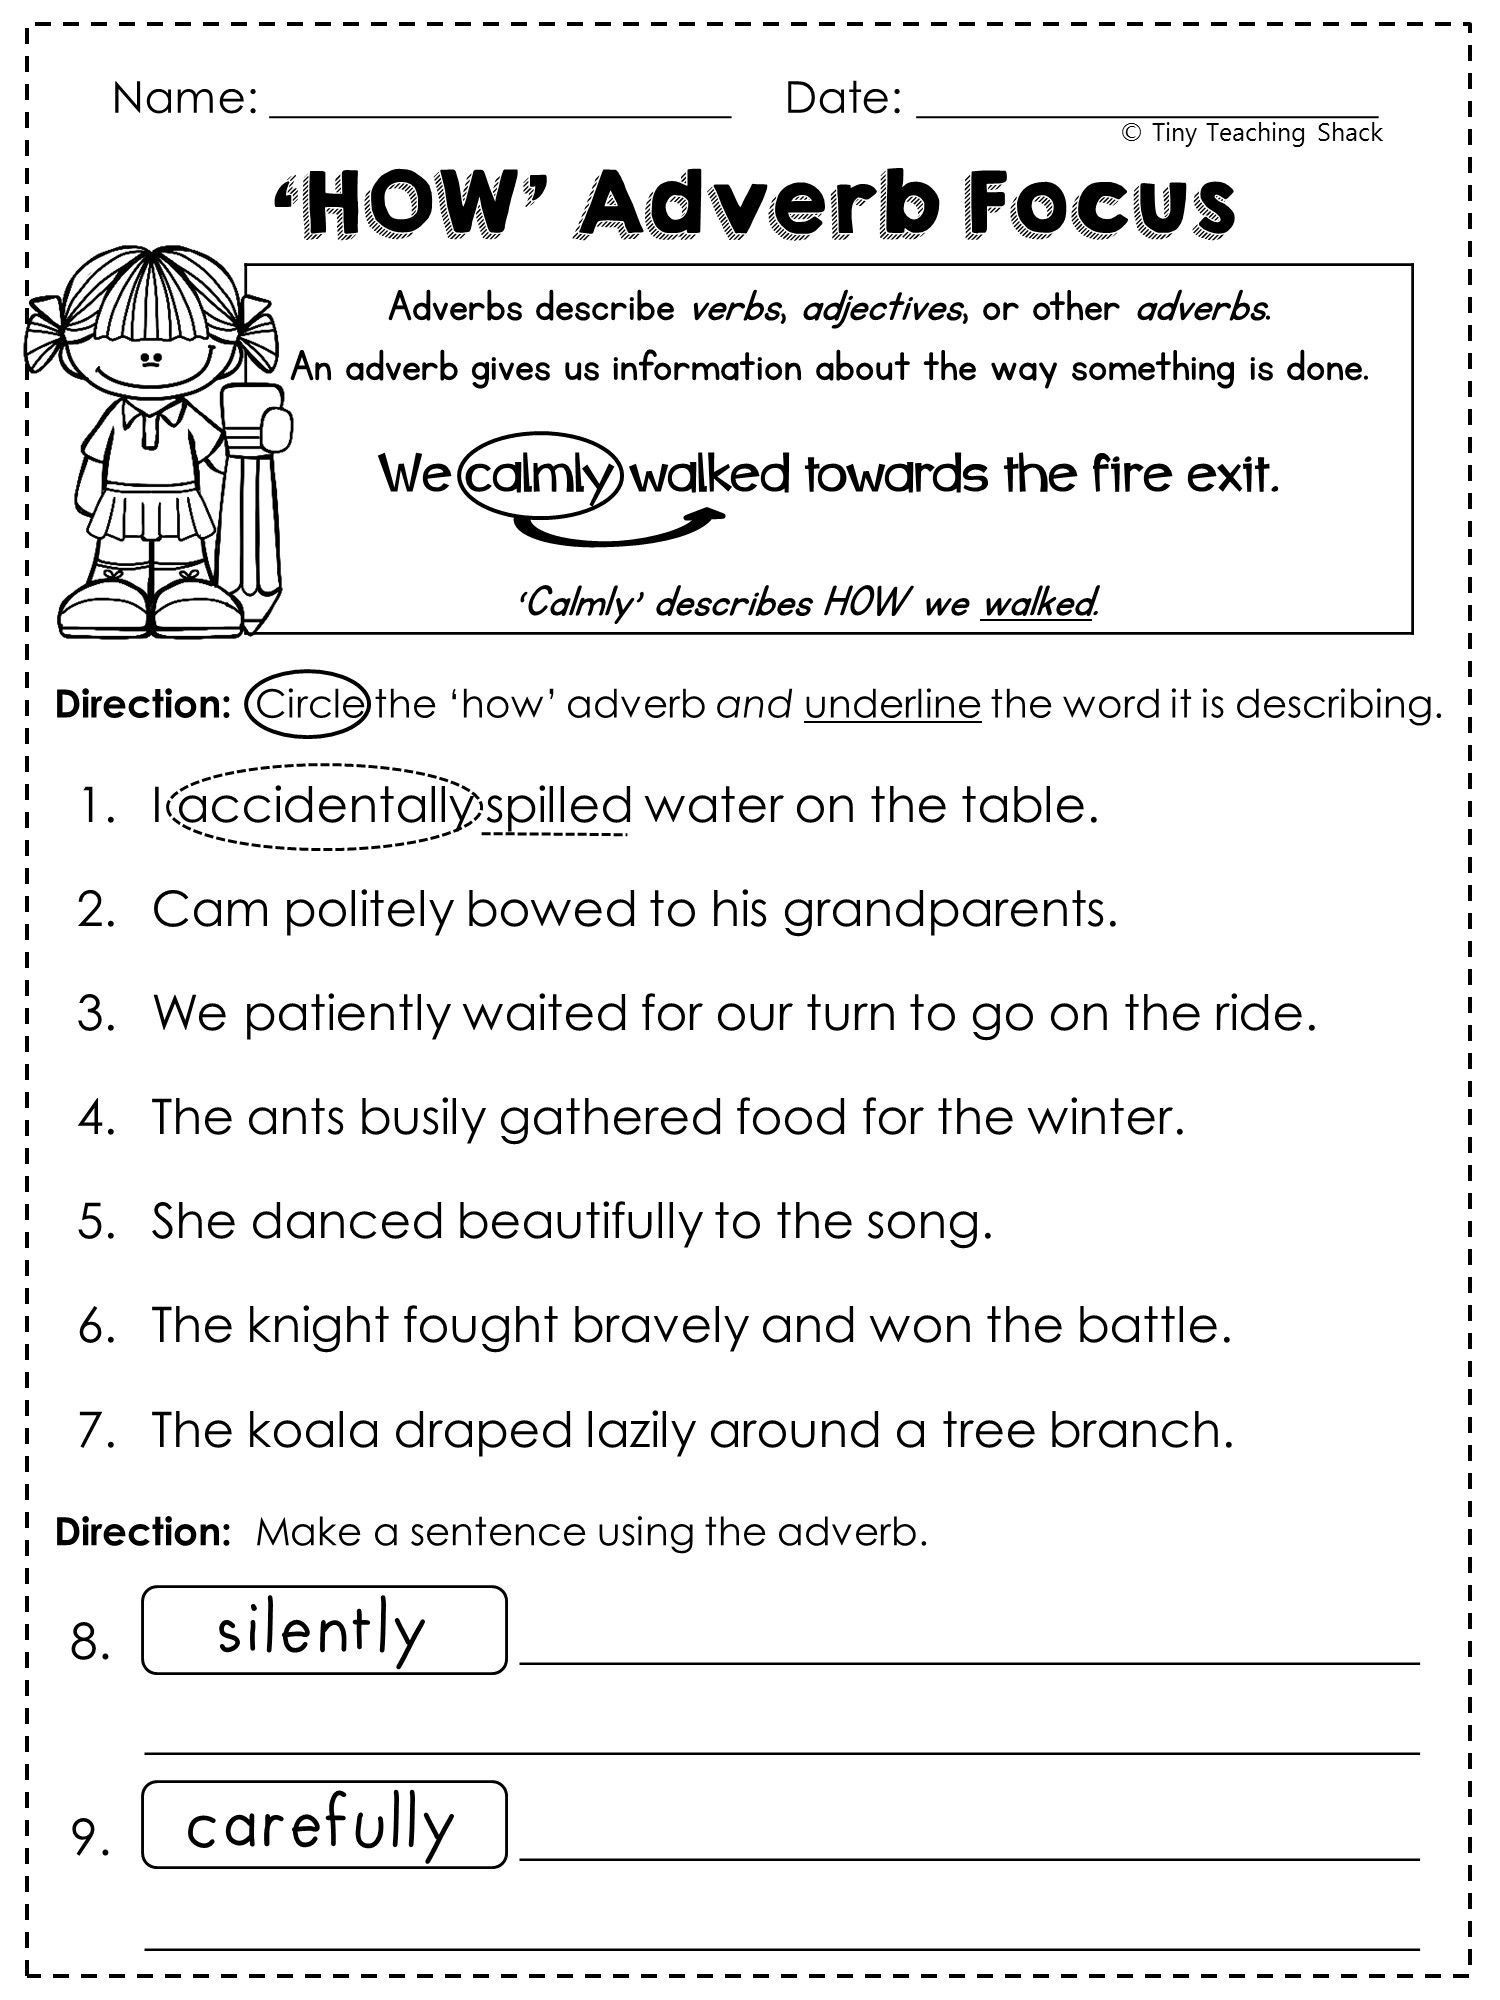 Grammar Worksheets 2nd Grade Printable Amazing Printable Worksheets